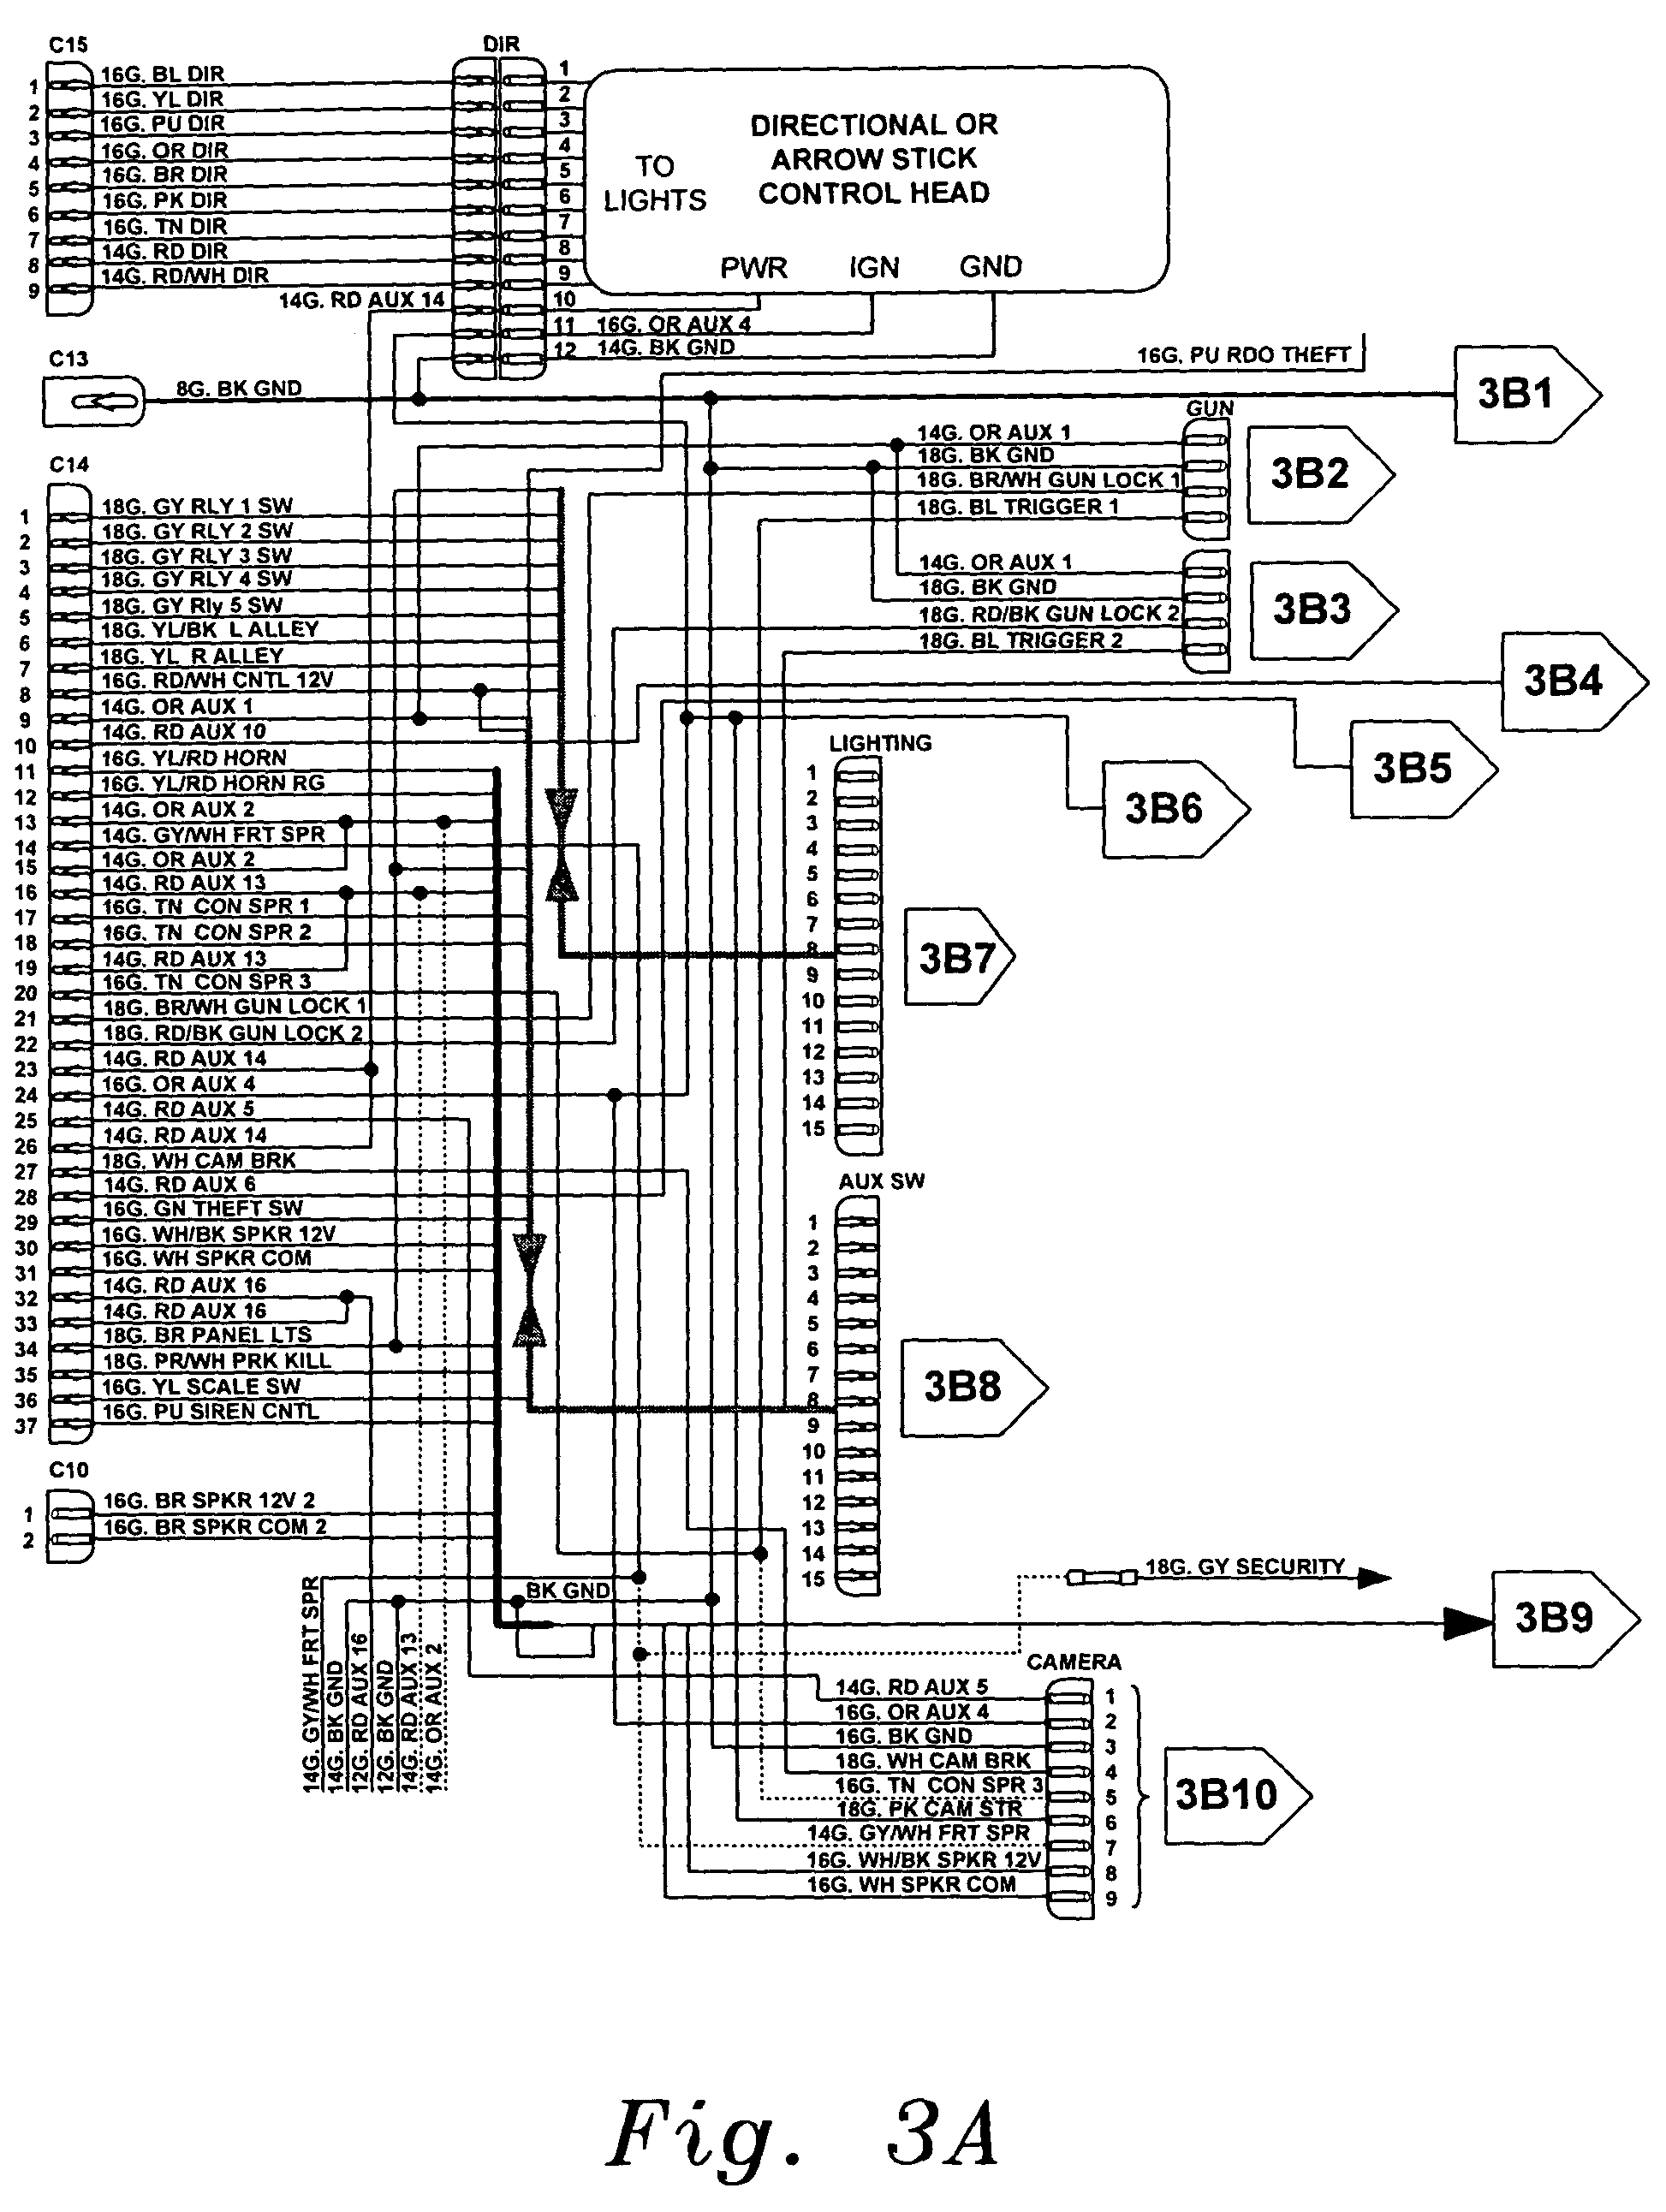 Caterpillar C15 Wiring Harness Diagram